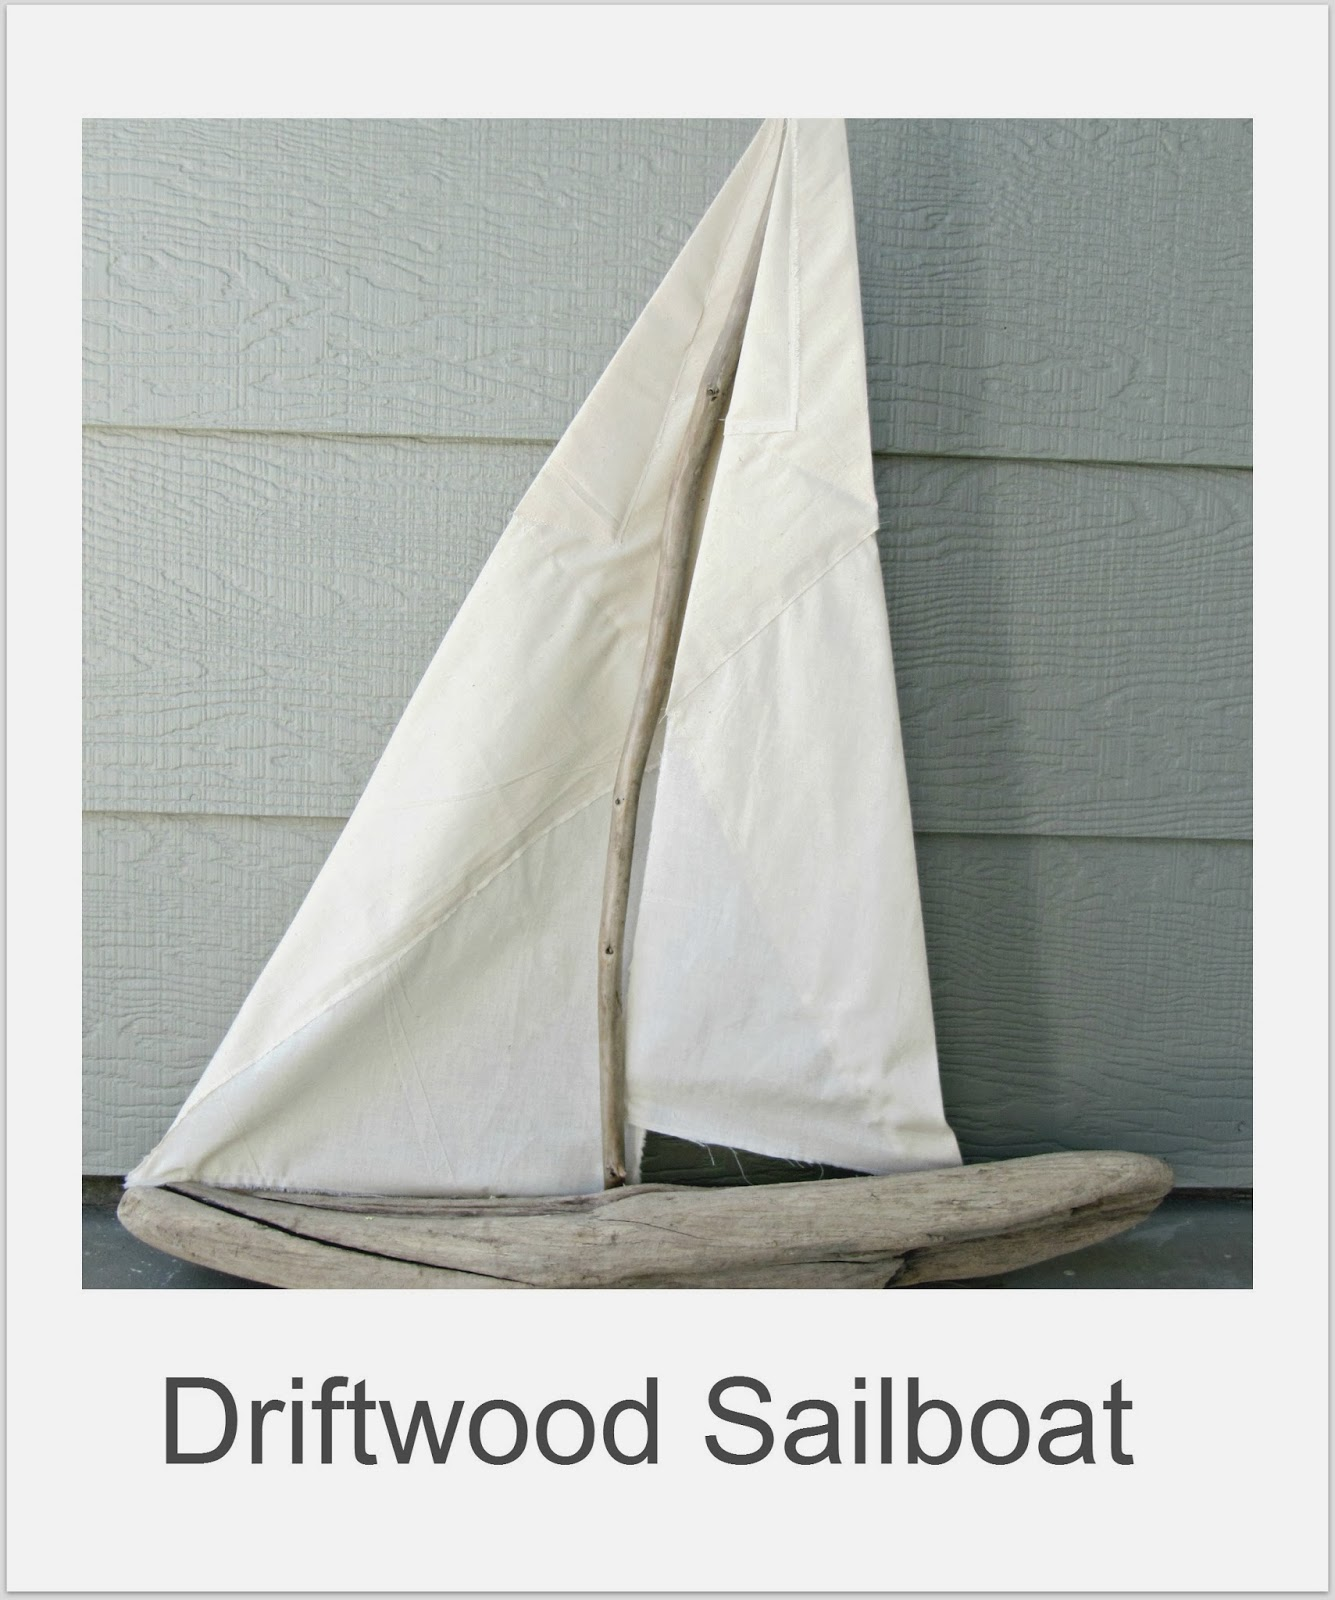 http://thewickerhouse.blogspot.com/2012/05/driftwood-sailboat.html